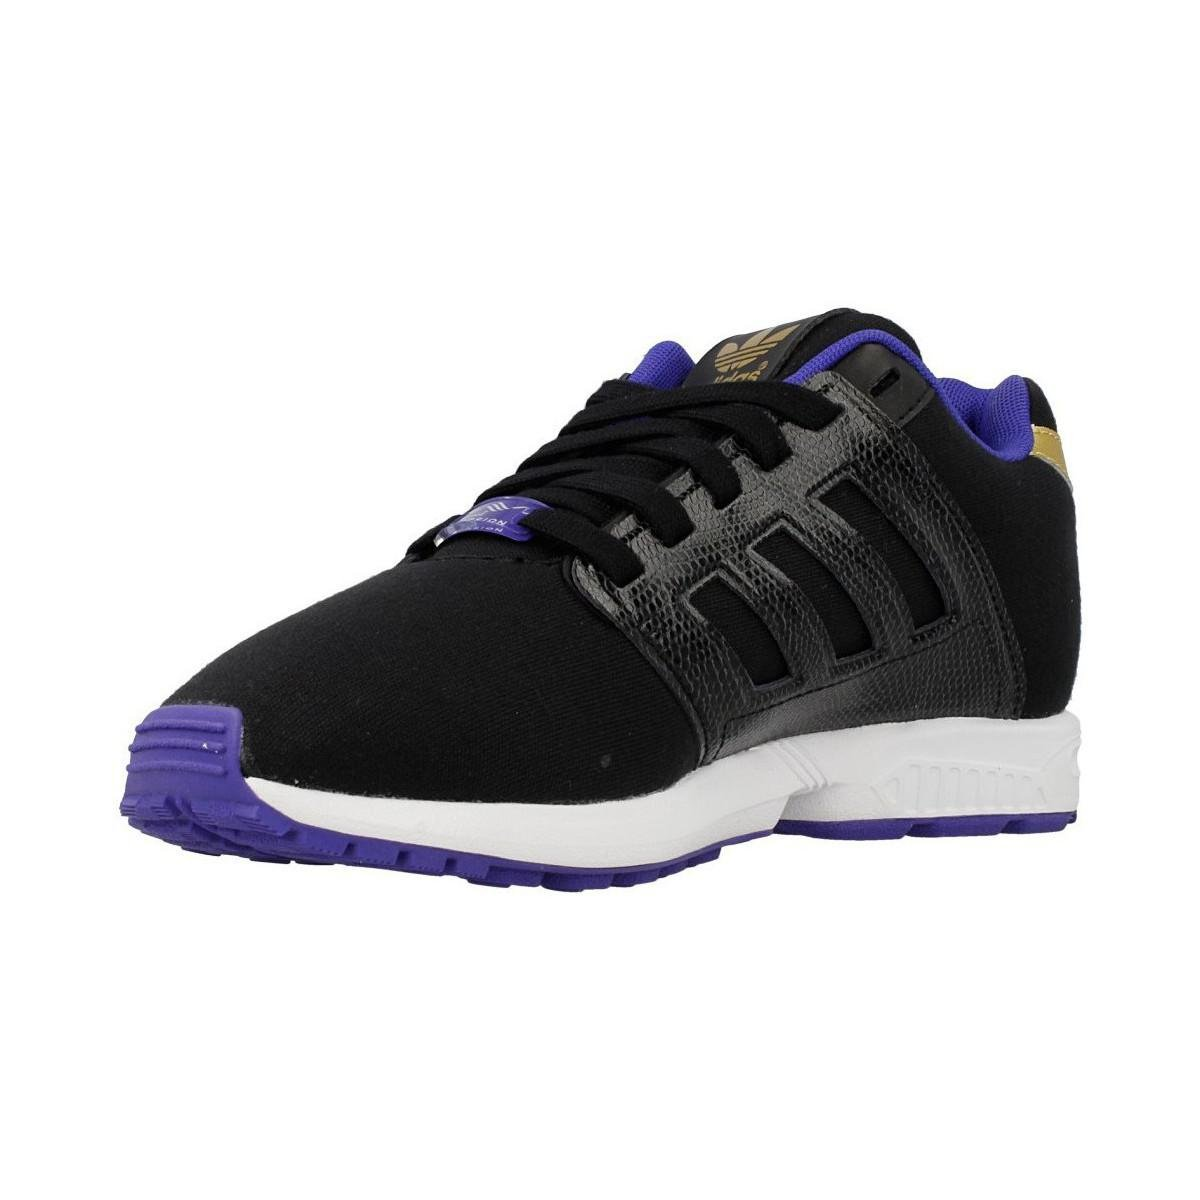 a3d4c66c5 adidas Zx Flux 20 W Women s Shoes (trainers) In Black in Black - Lyst